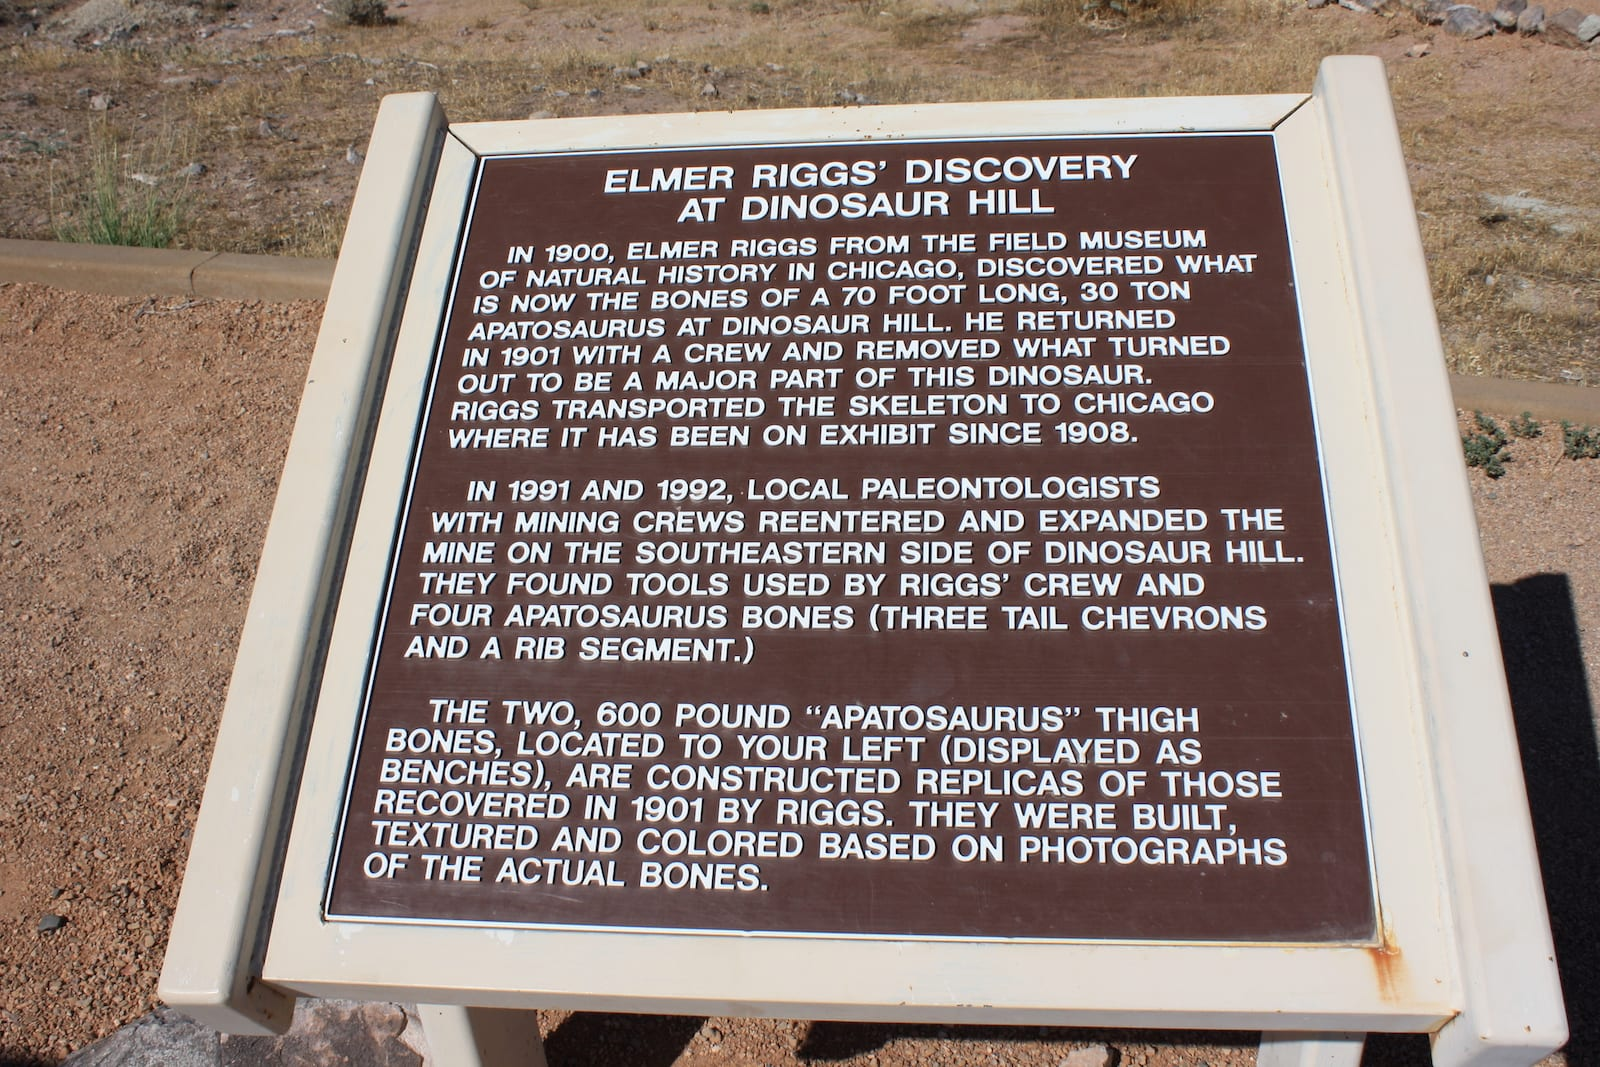 Information about Dinosaur Hill